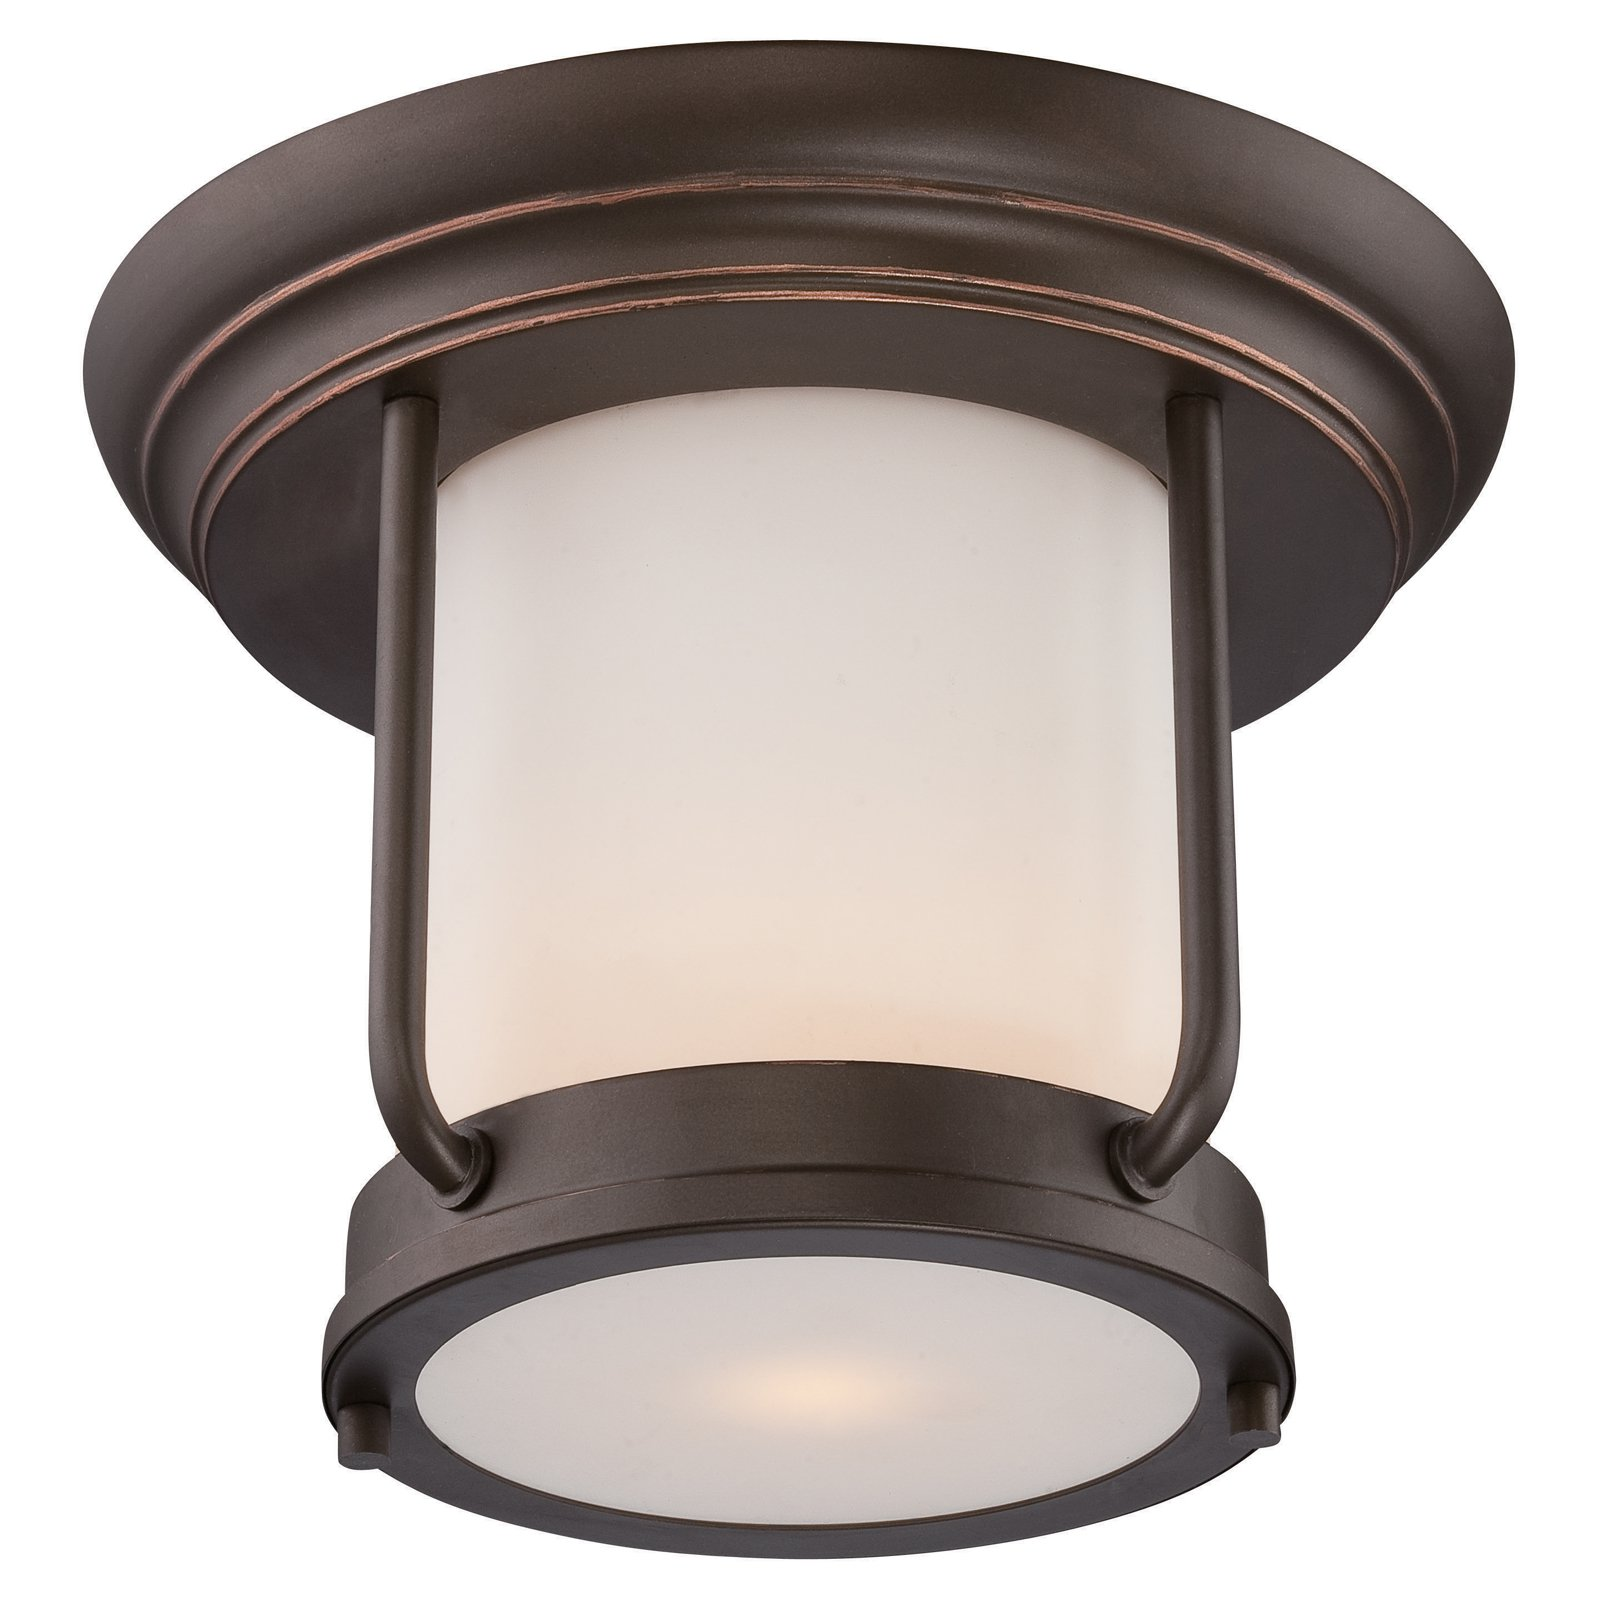 Nuvo Bethany 62-633 Outdoor Flush Mount Light